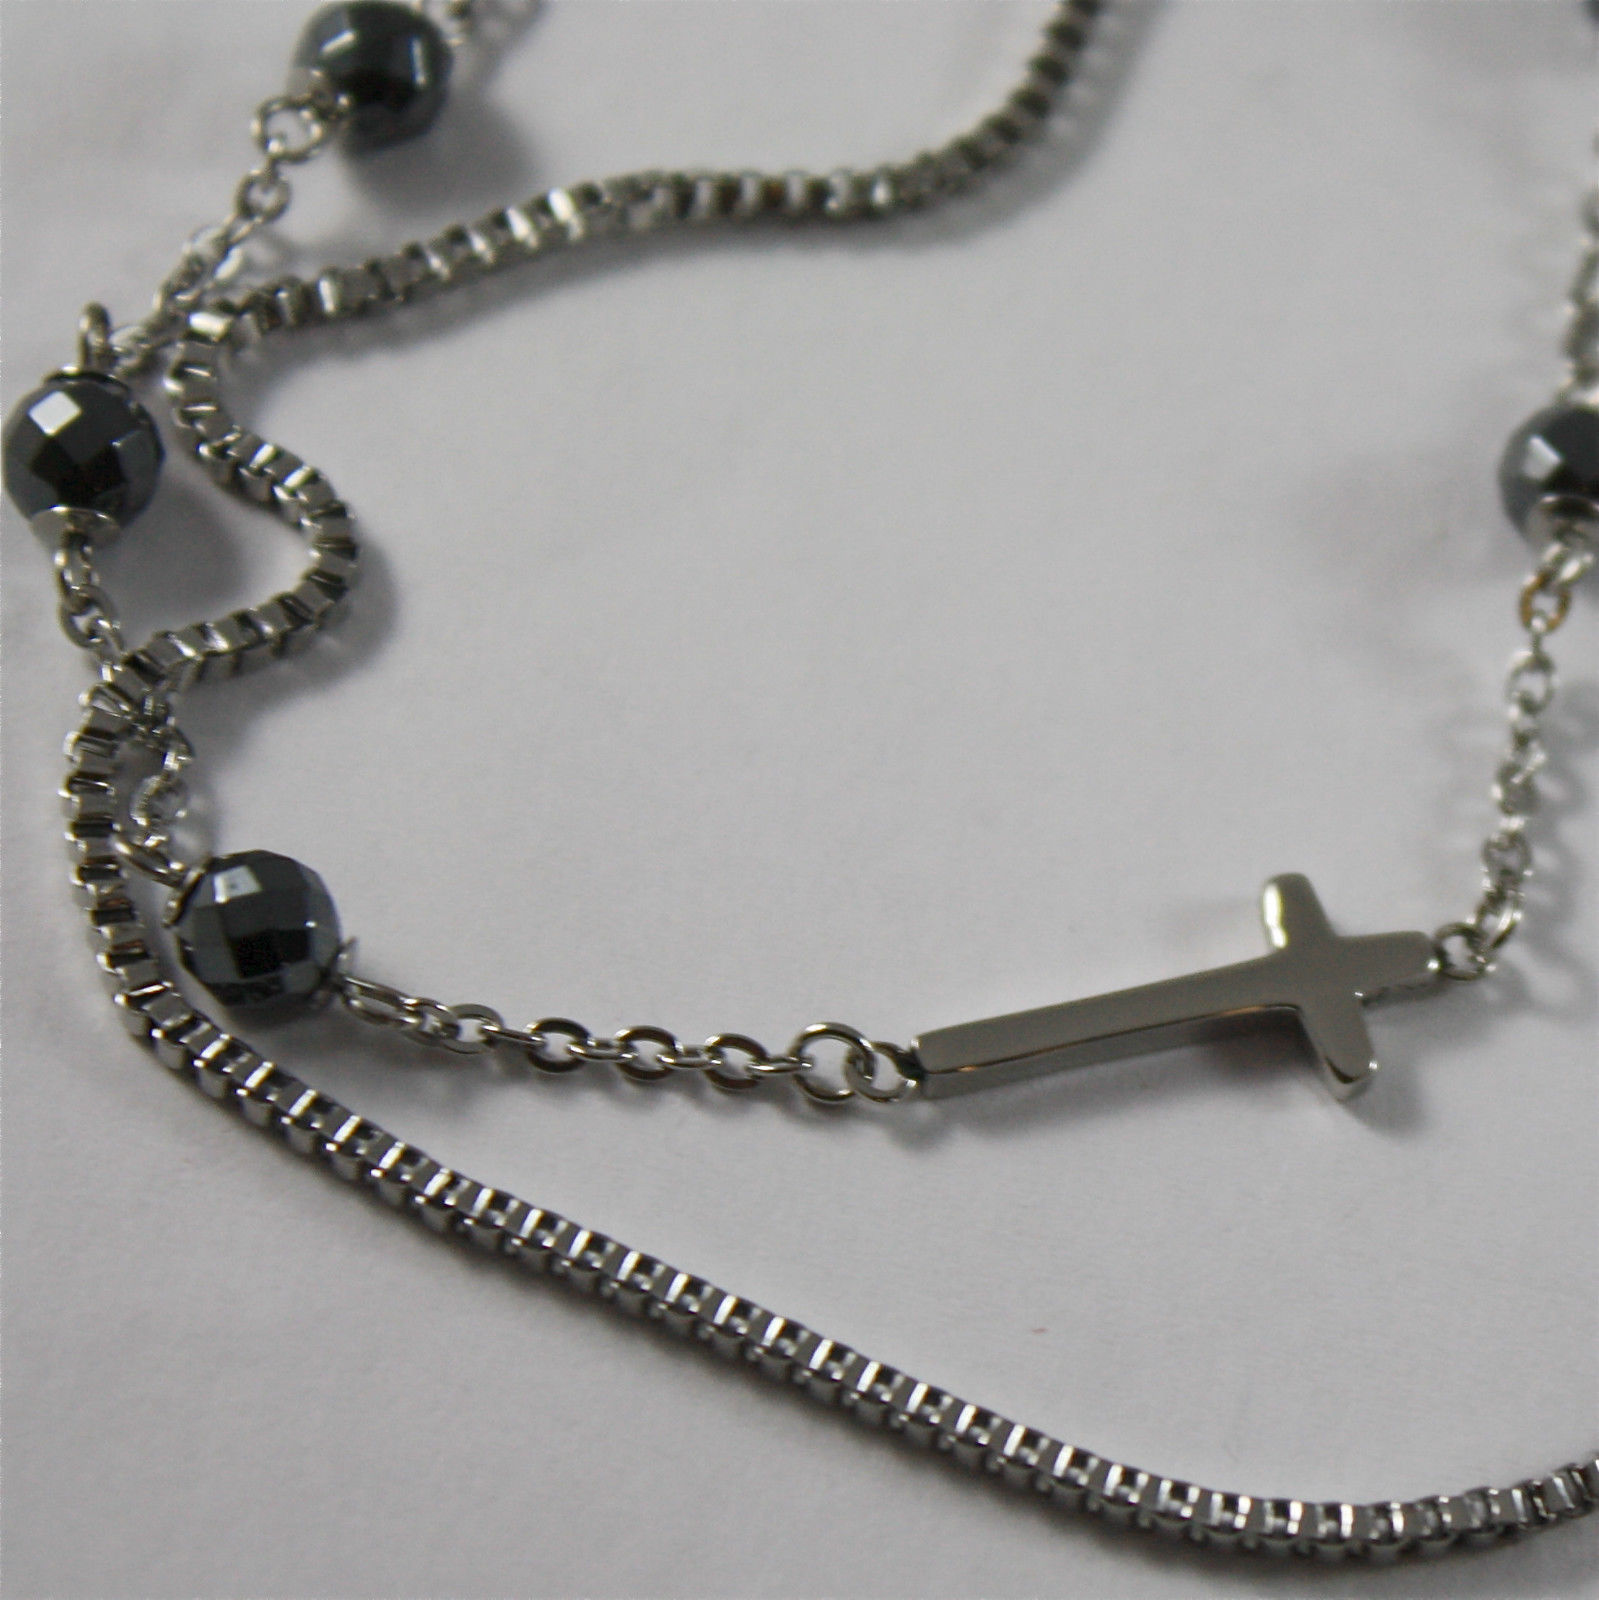 S'AGAPO' NECKLACE, 316L STEEL, CROSSES AND FACETED BALLS, IN BURNISHED STEEL.